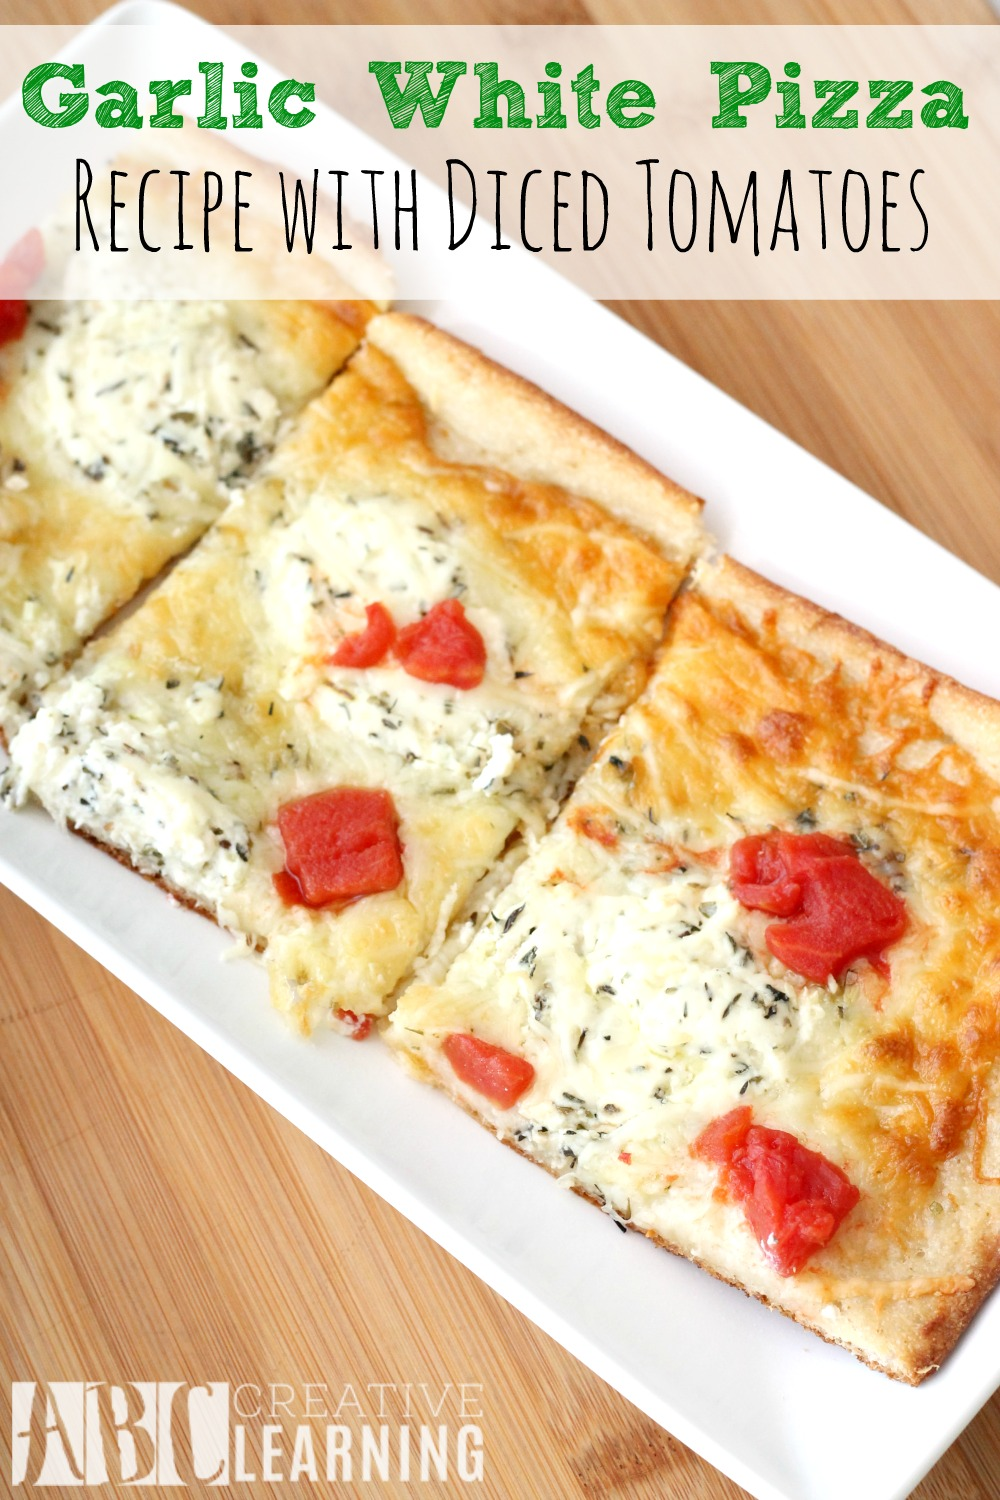 Garlic White Pizza Recipe with Diced Tomatoes + Paypal Giveaway